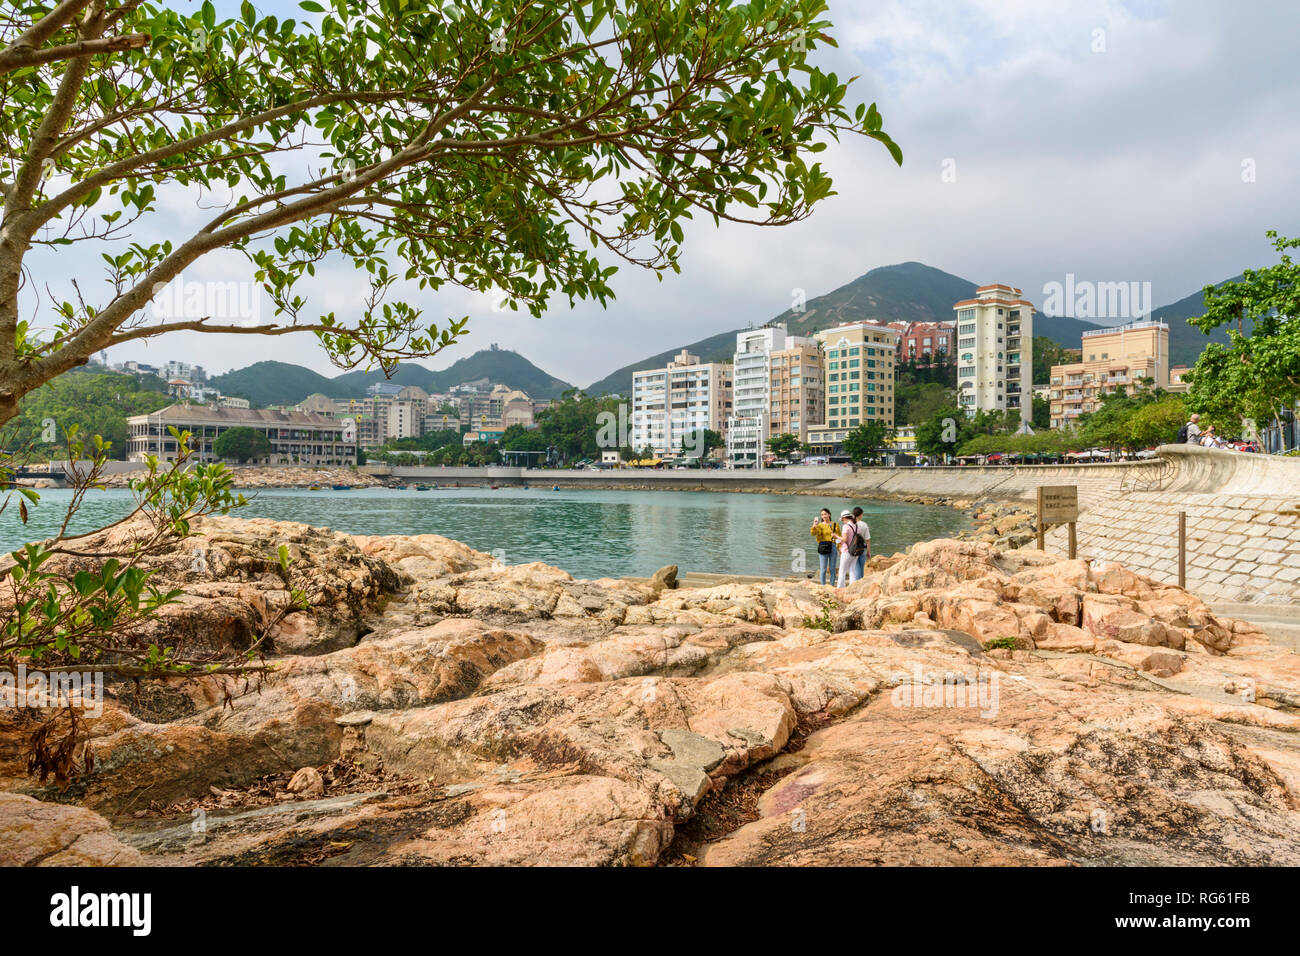 Views over Stanley Bay and waterfront promenade of Stanley, Hong Kong - Stock Image